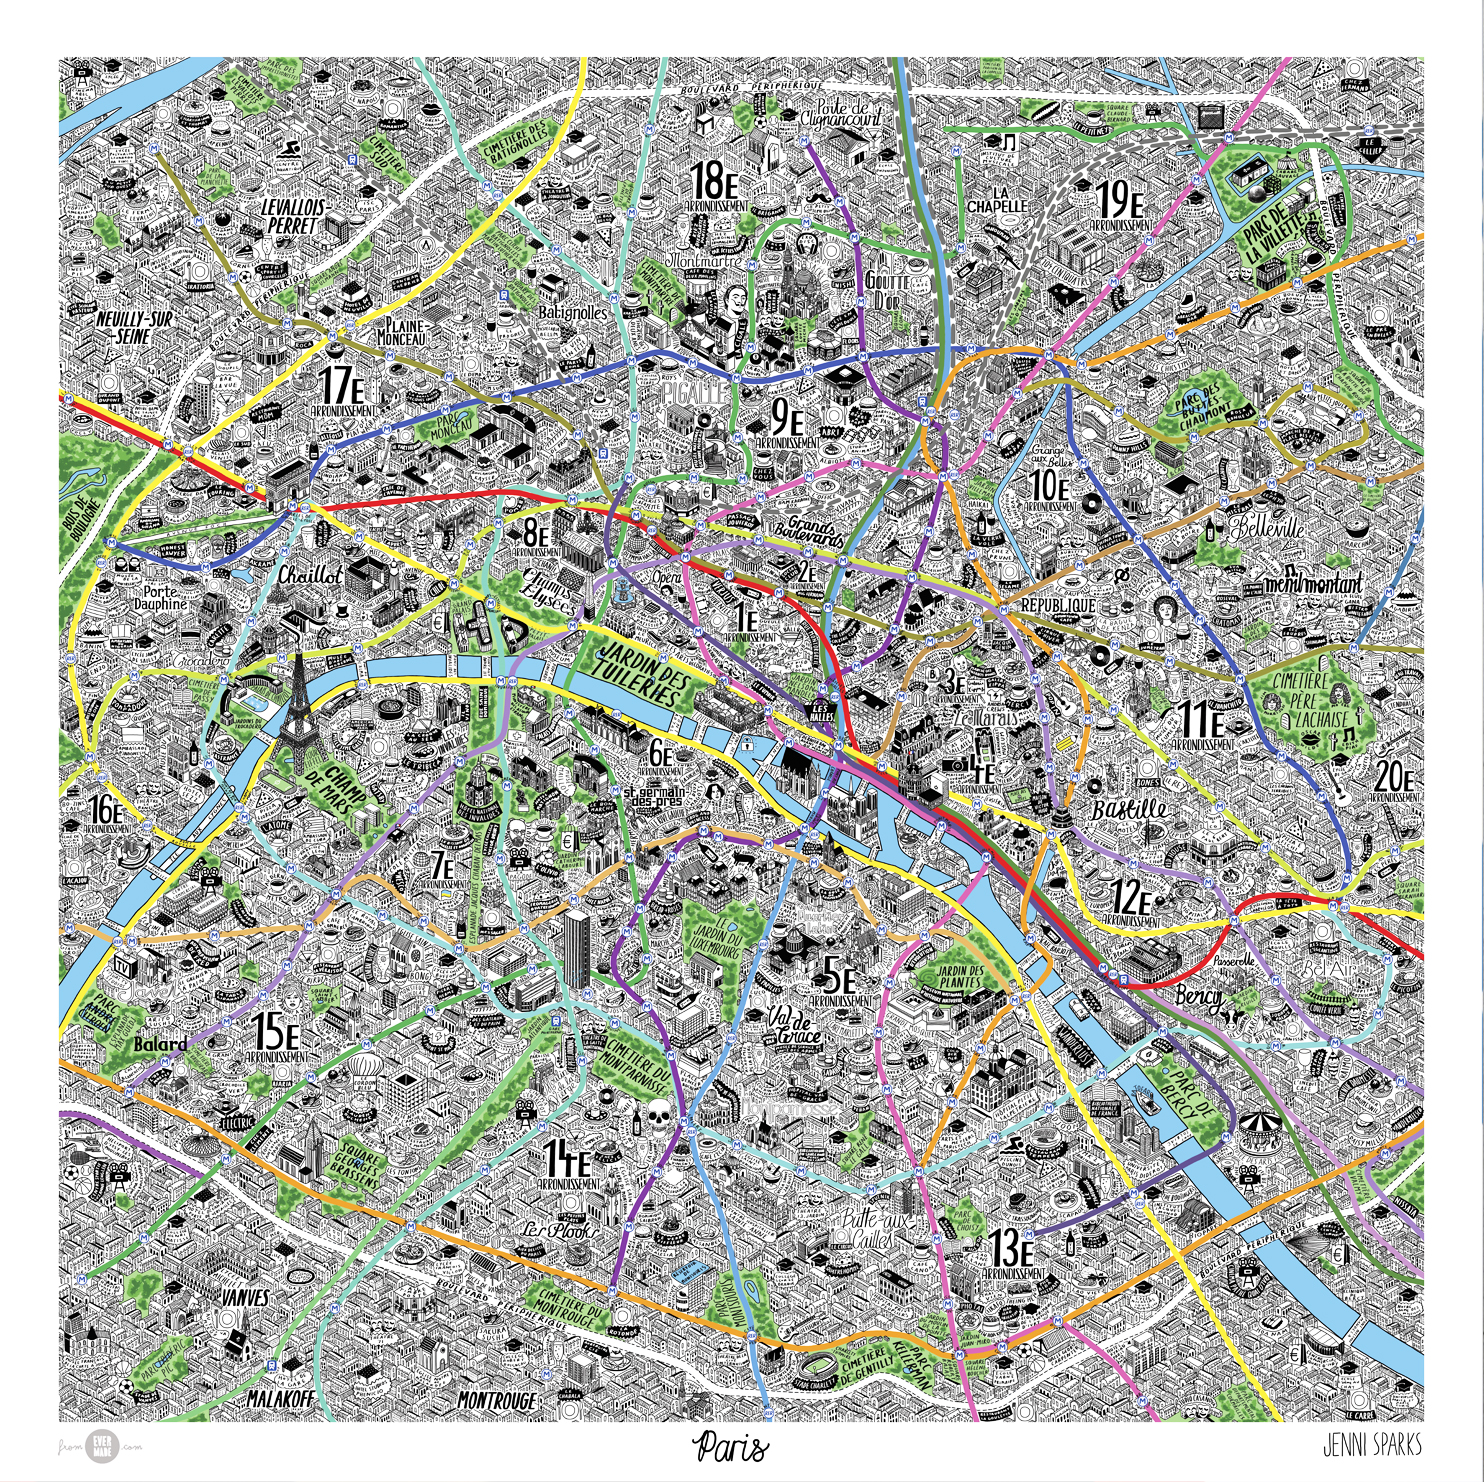 hand drawn map of paris - Jenni Sparks on printable map of paris, simplified map of paris, english map of paris, sports map of paris, interactive map of paris, white map of paris, outlined map of paris, high resolution map of paris, history map of paris, fun map of paris, highlighted map of paris, large map of paris, antique map of paris, watercolor of paris, color map of paris, travel map of paris, detailed street map of paris, photography of paris, religion map of paris, illustration of paris,